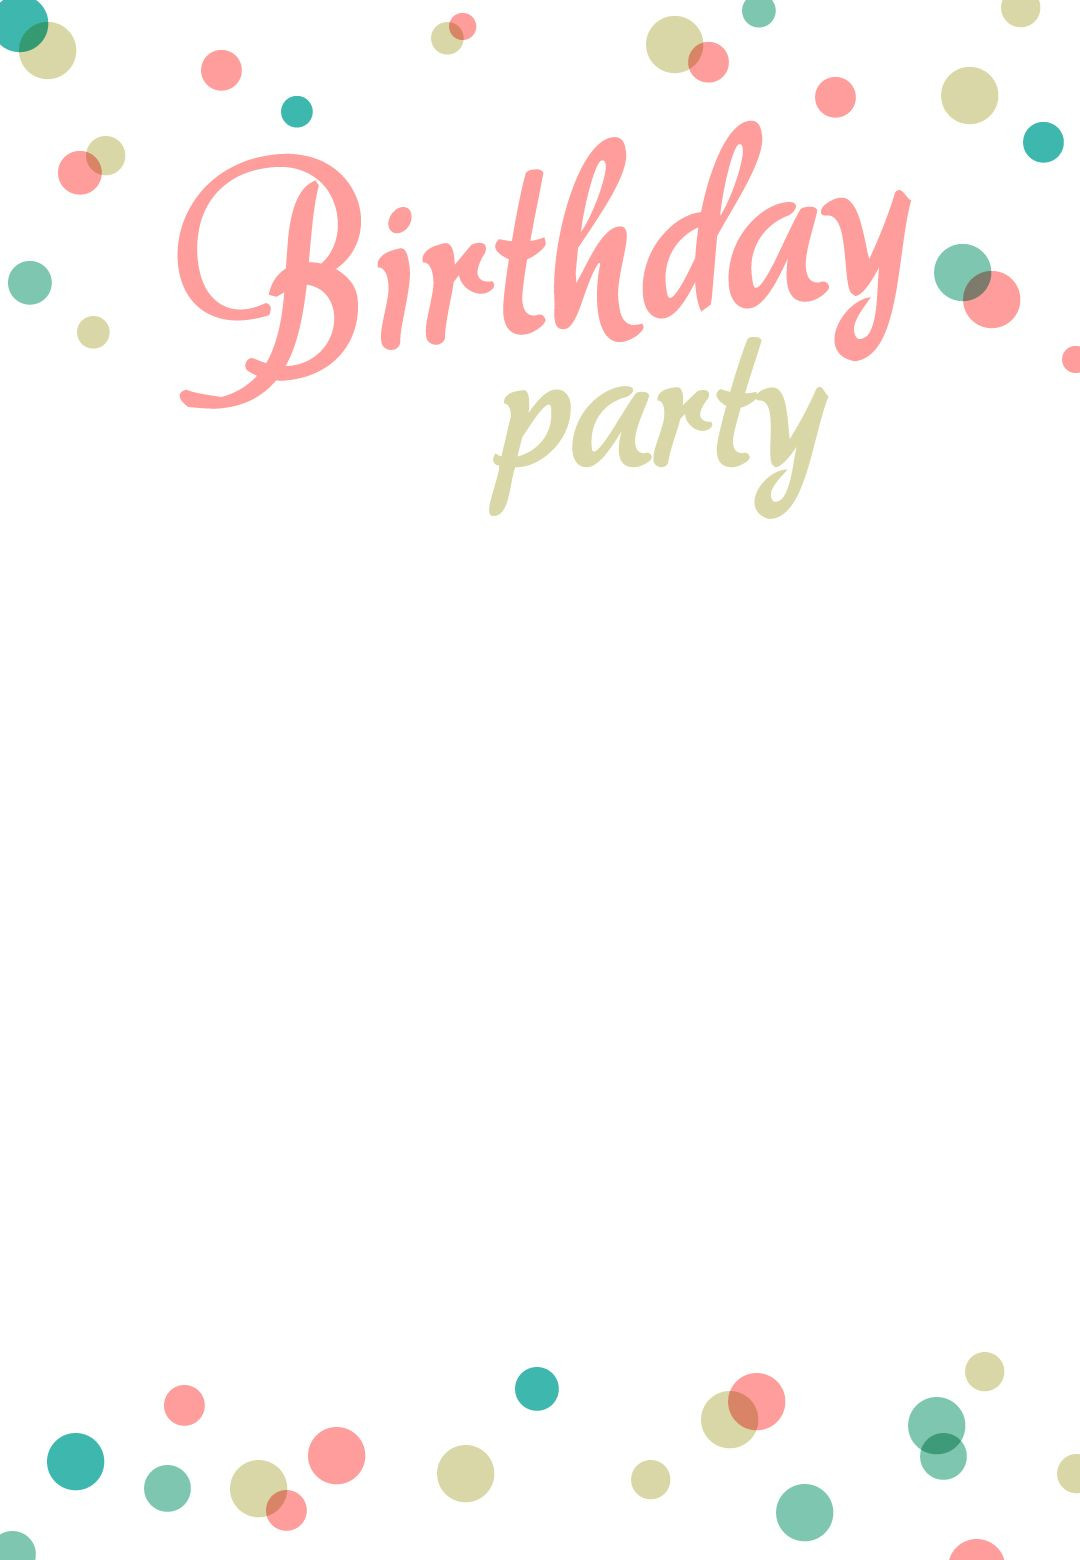 Best ideas about Free Kids Birthday Invitations . Save or Pin Birthday Party Invitation Free Printable Now.